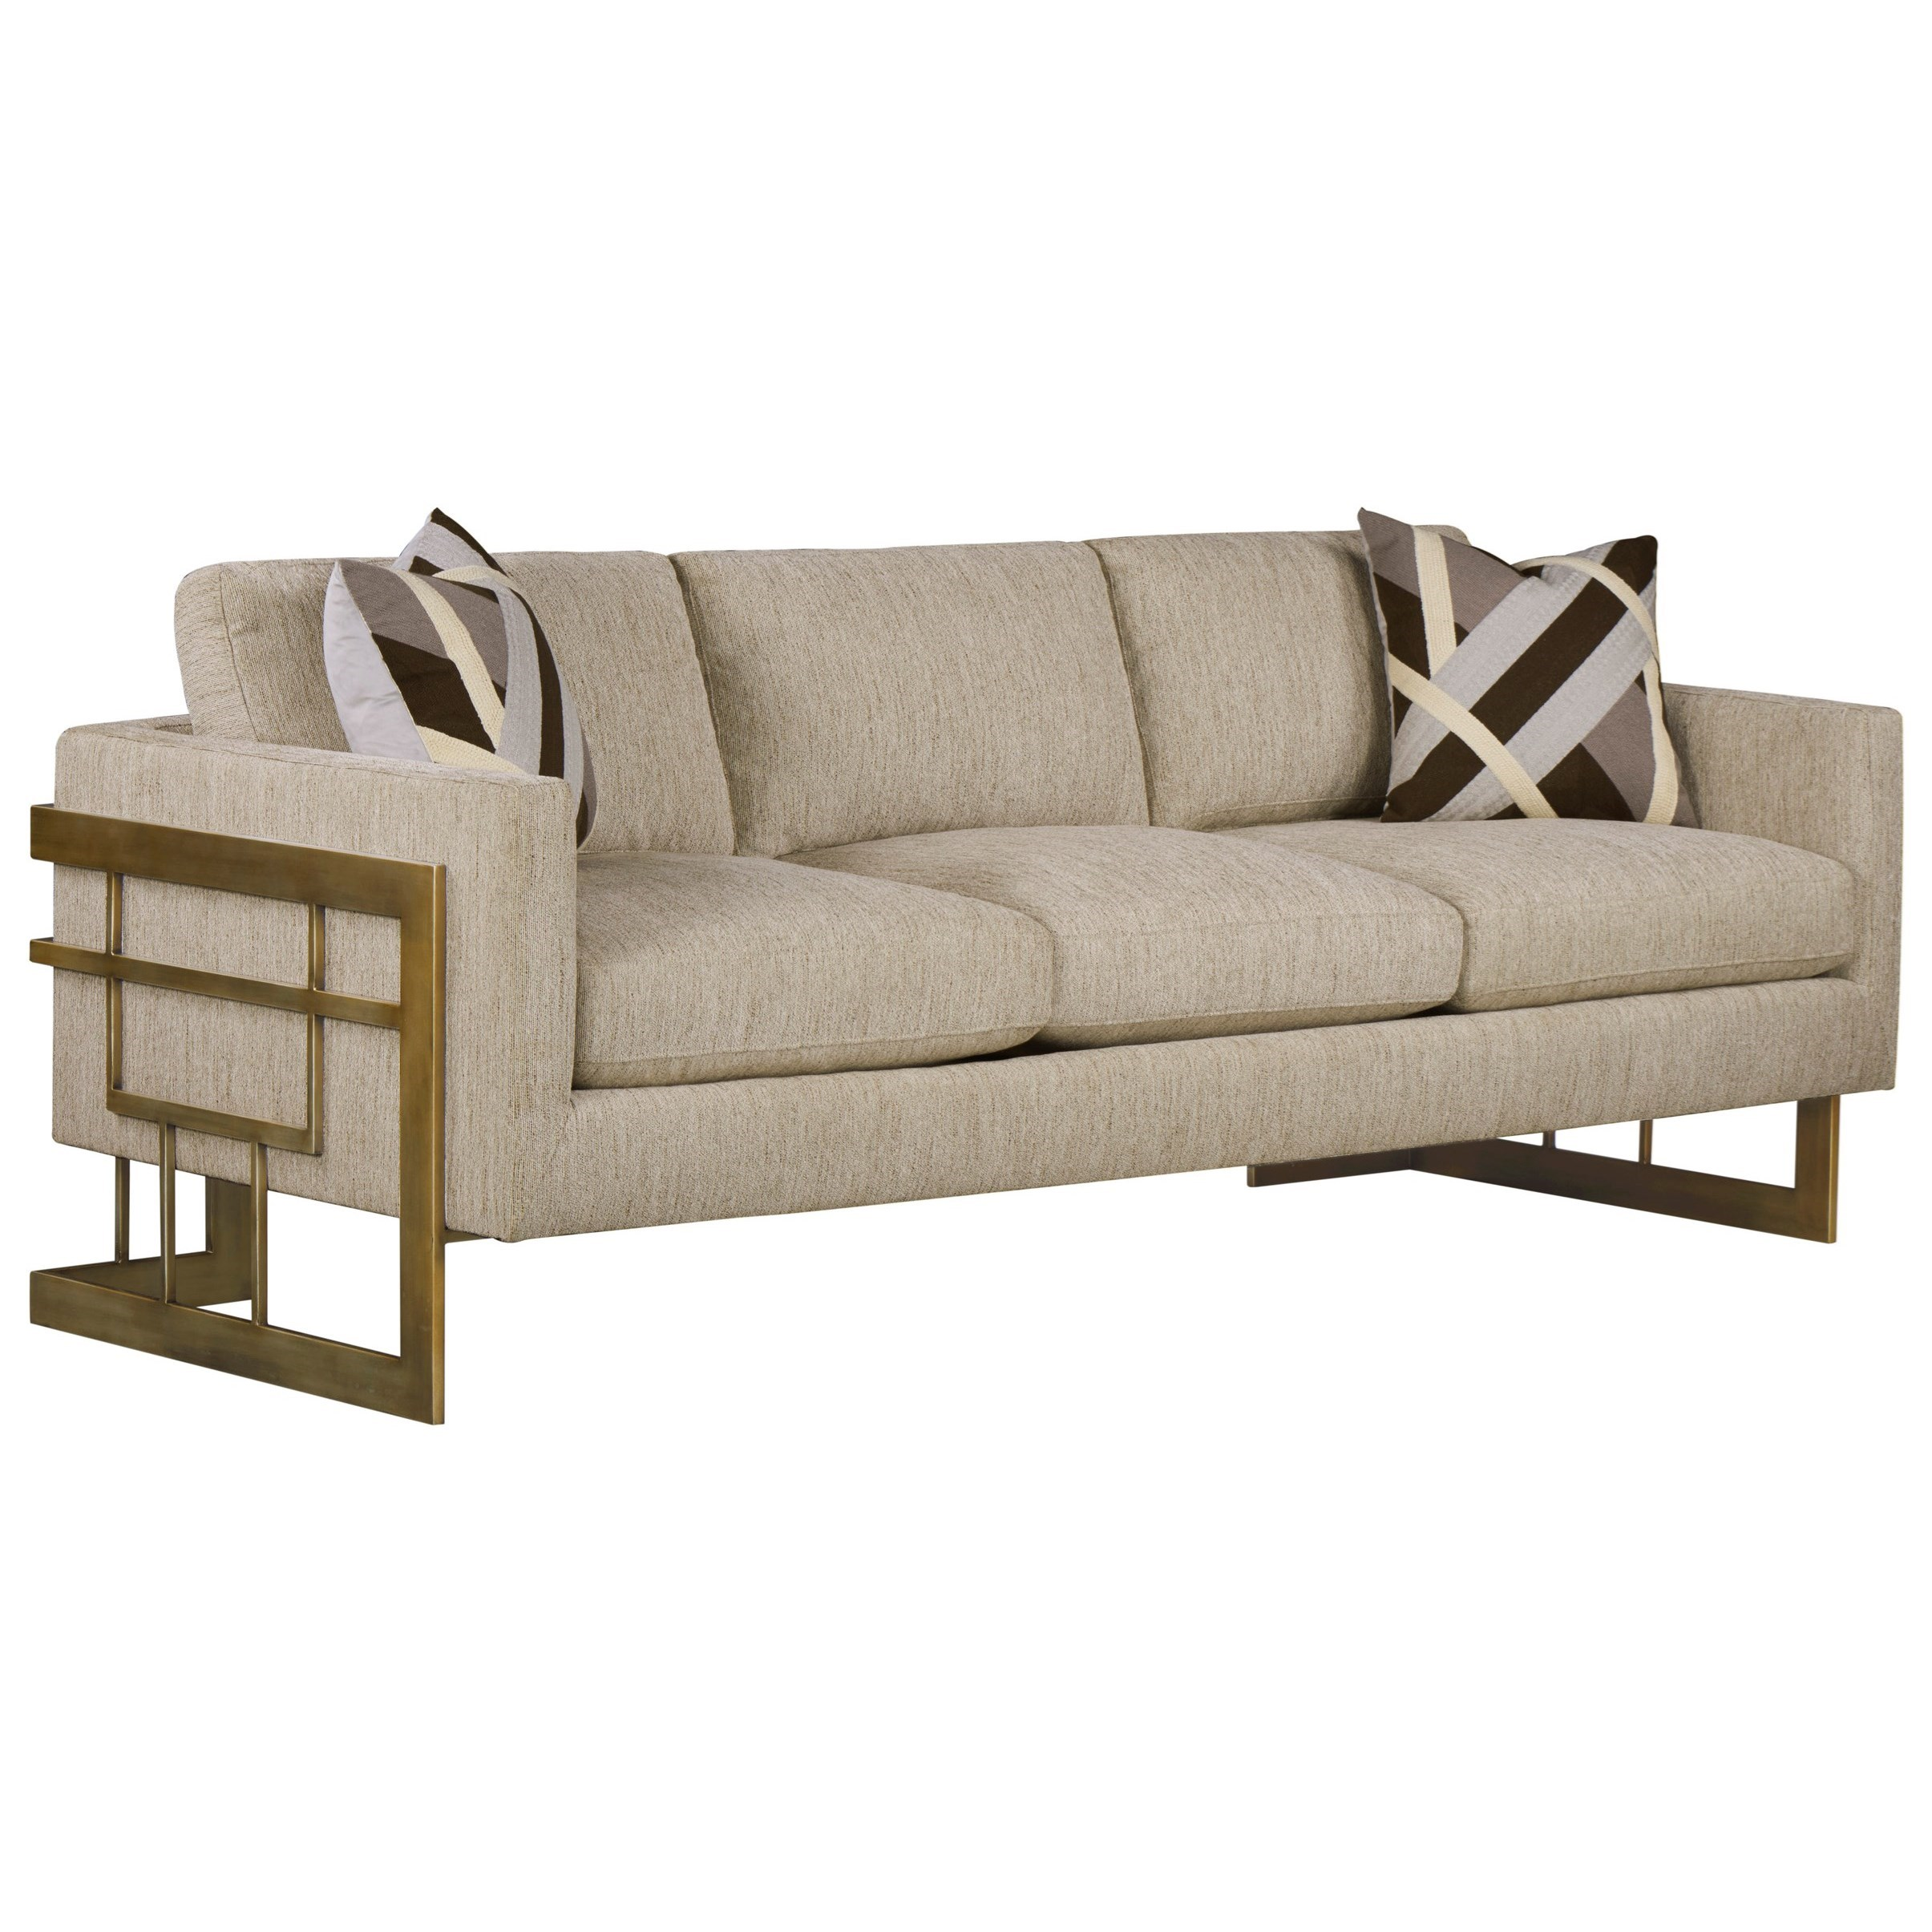 WoodWright Upholstery Sofa by A.R.T. Furniture Inc at Powell's Furniture and Mattress